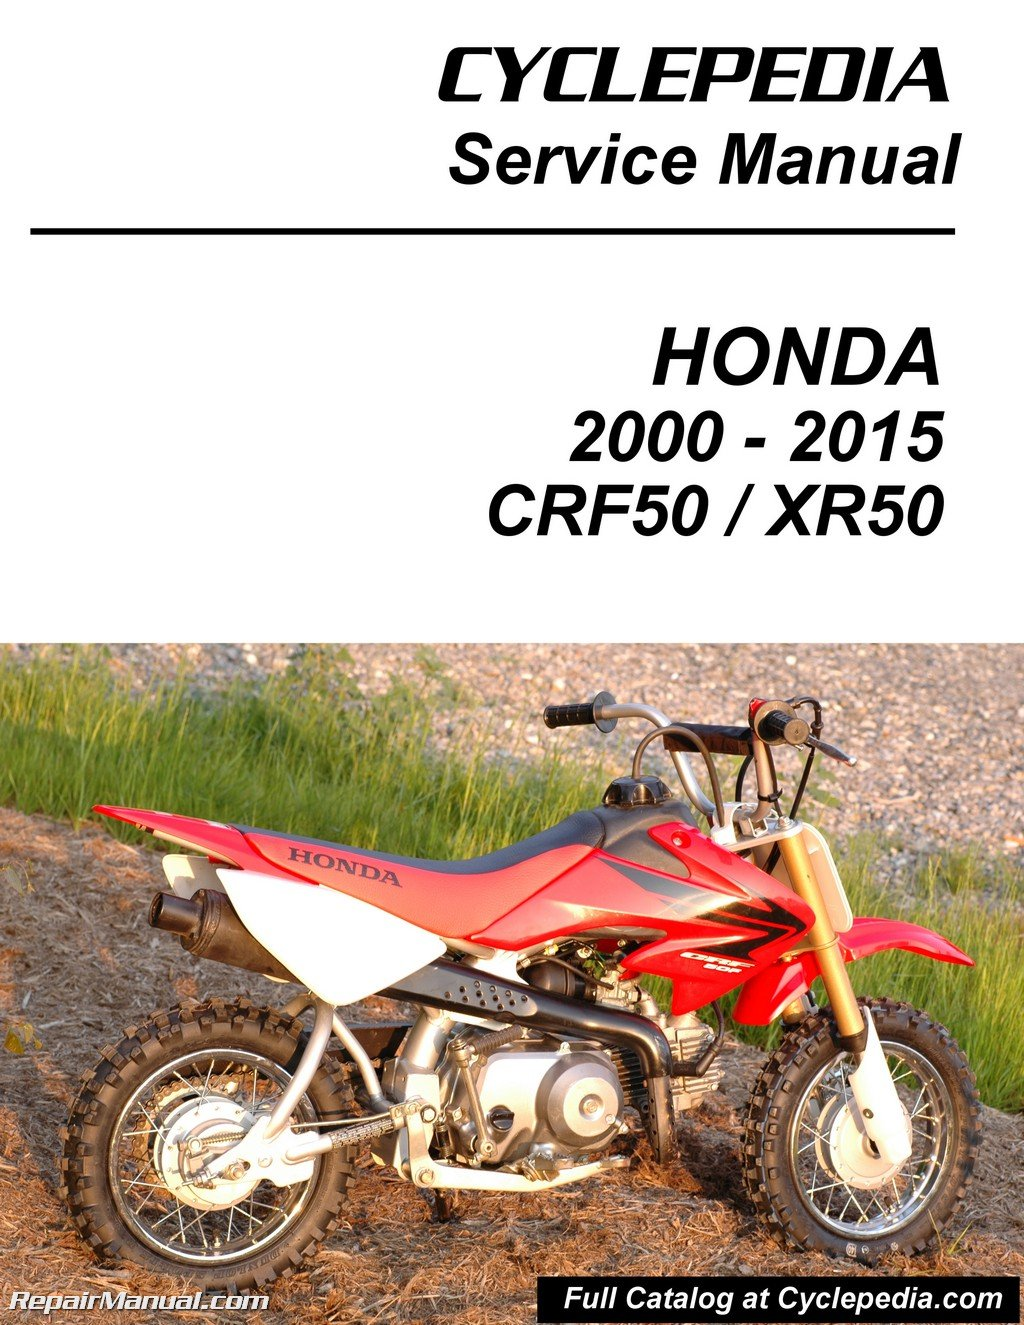 cpp-120-p-color honda xr50 crf50 motorcycle cyclepedia printed color -  service manual paperback – 2015